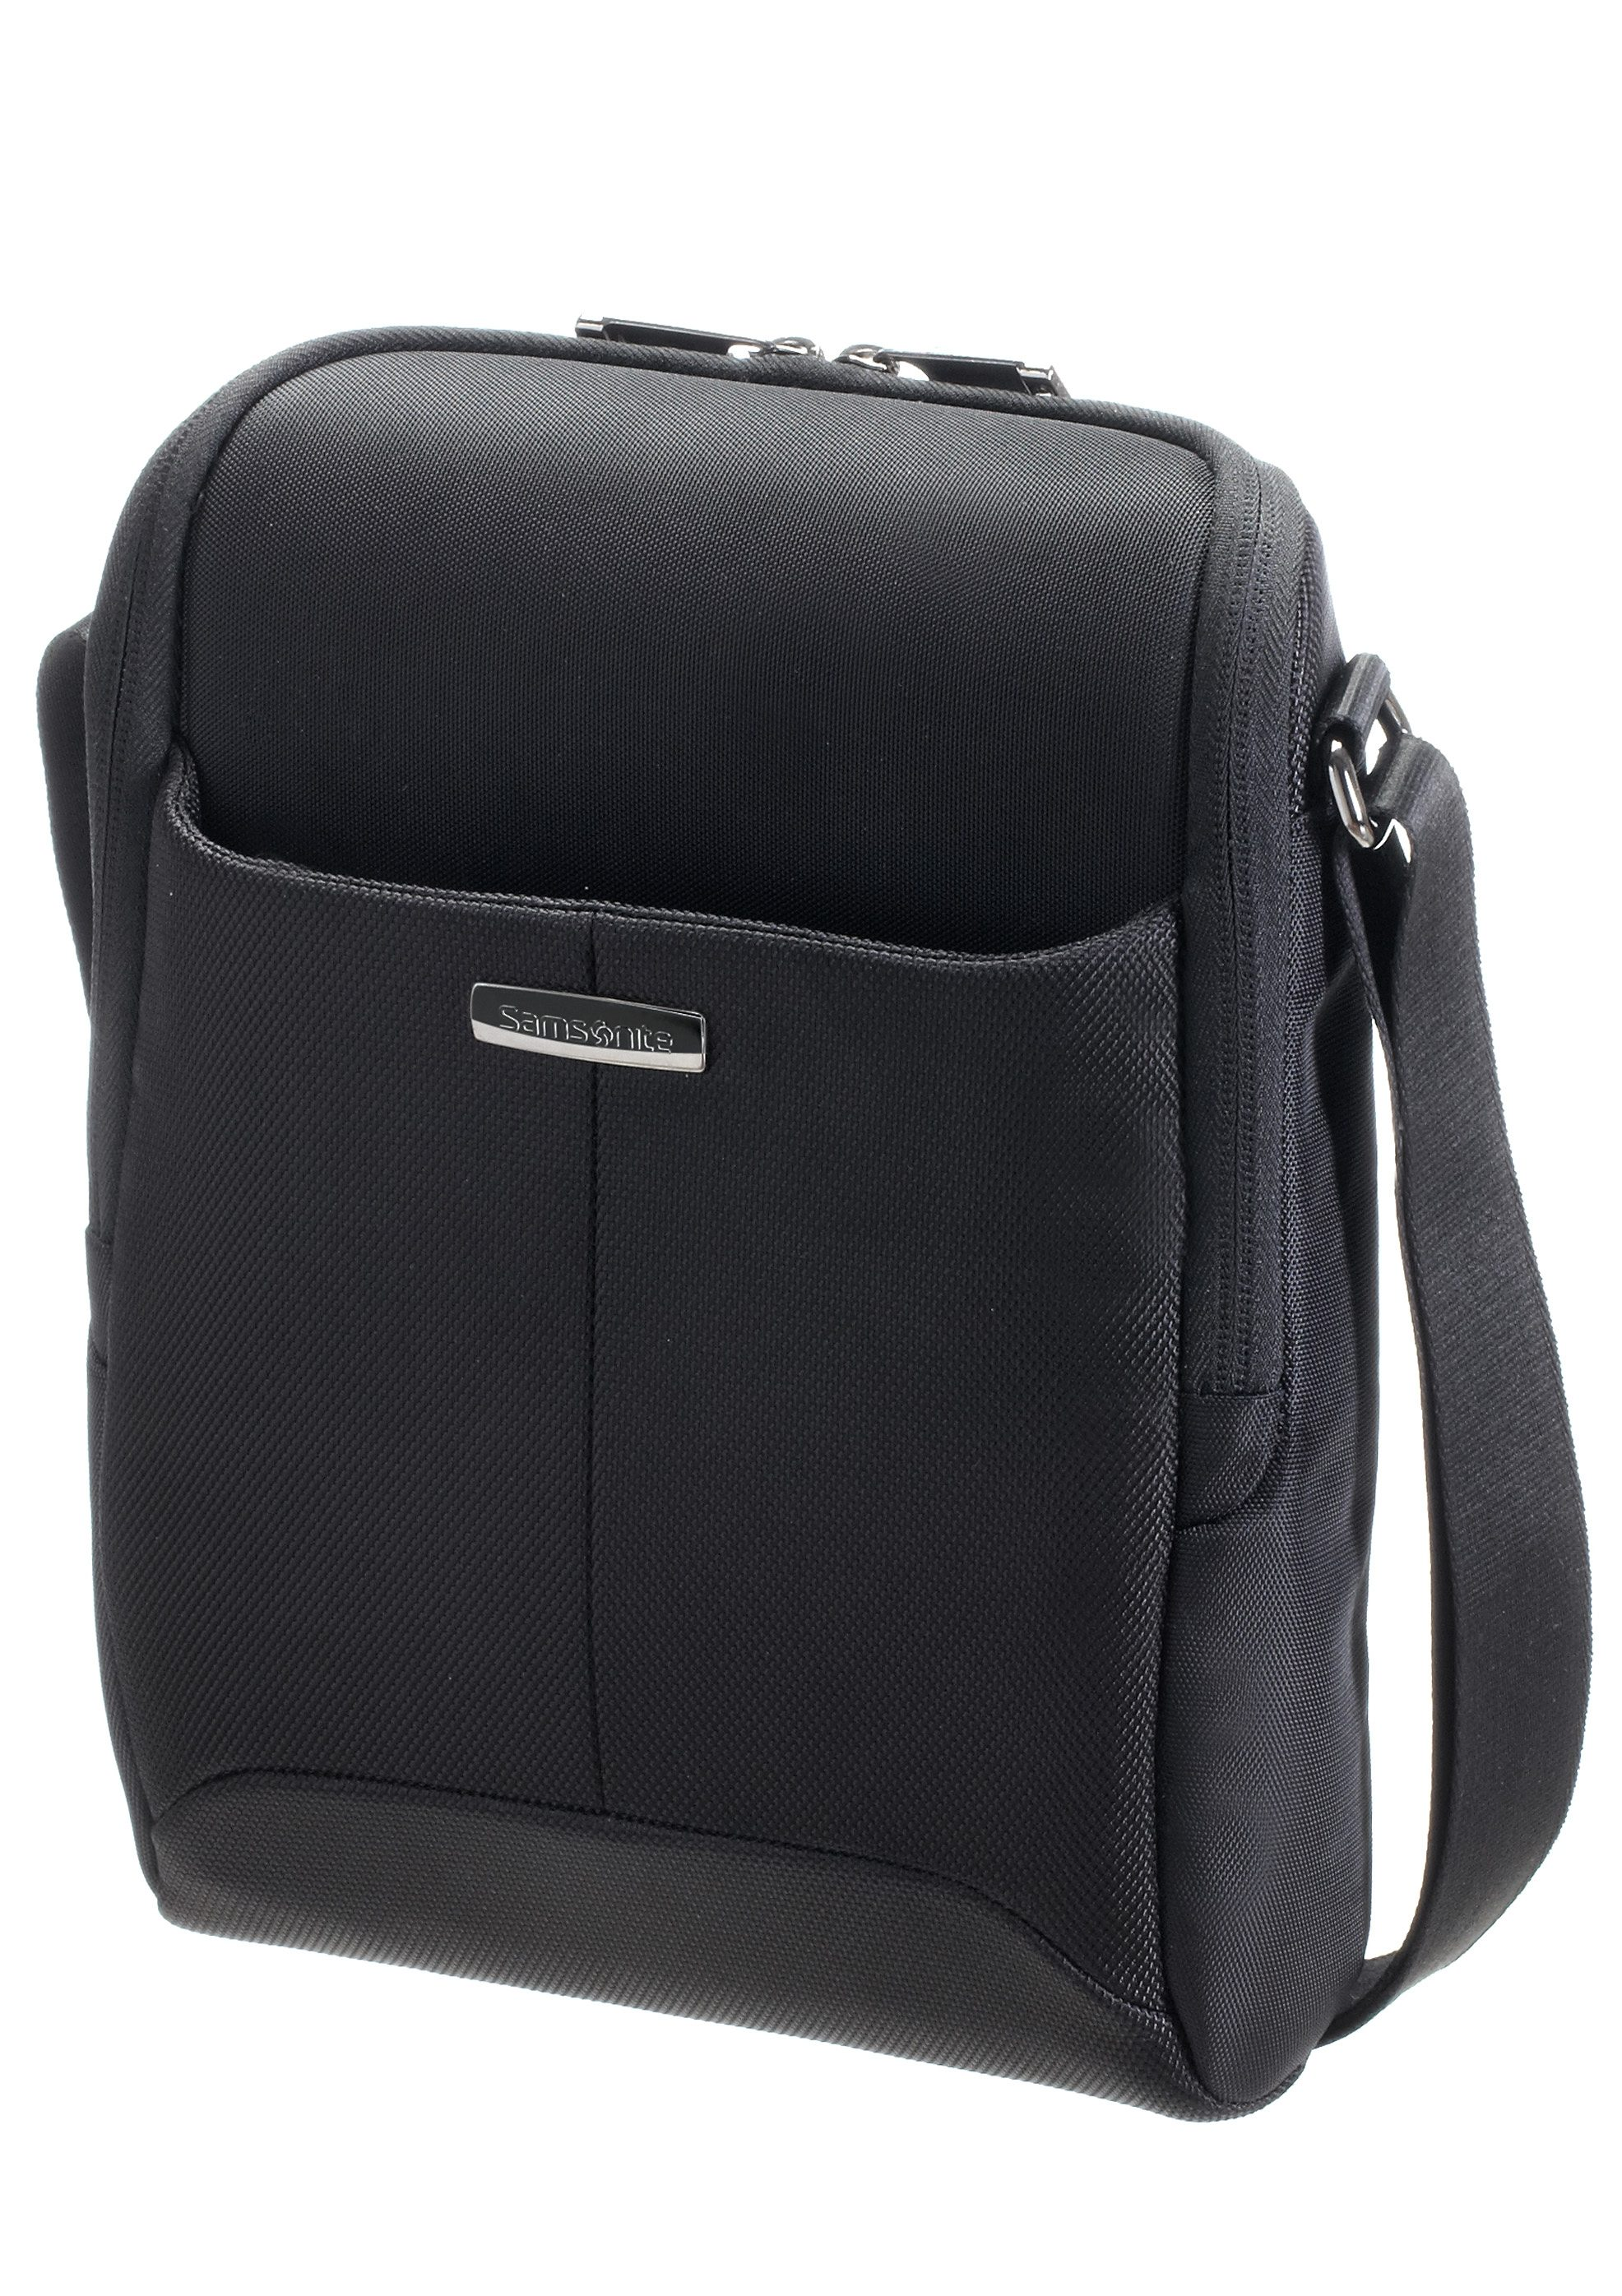 Samsonite Tablet-Tasche mit Schultergurt, »Ergo-Biz Tablet Cross-Over«